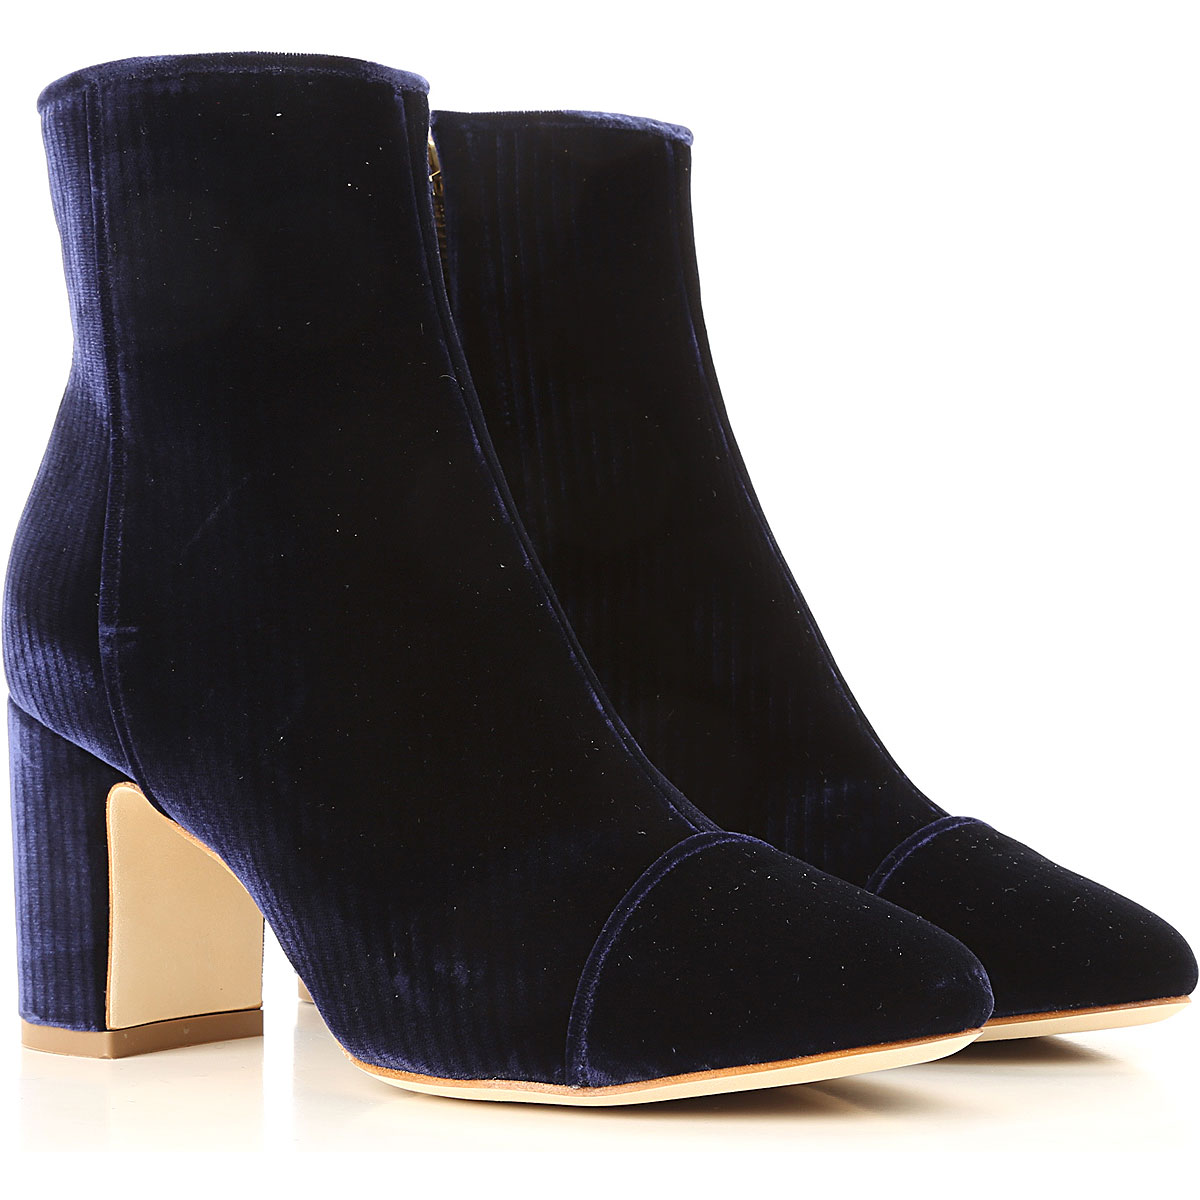 Image of Polly Plume Boots for Women, Booties, navy, Velvet, 2017, 10 6 7 8 9